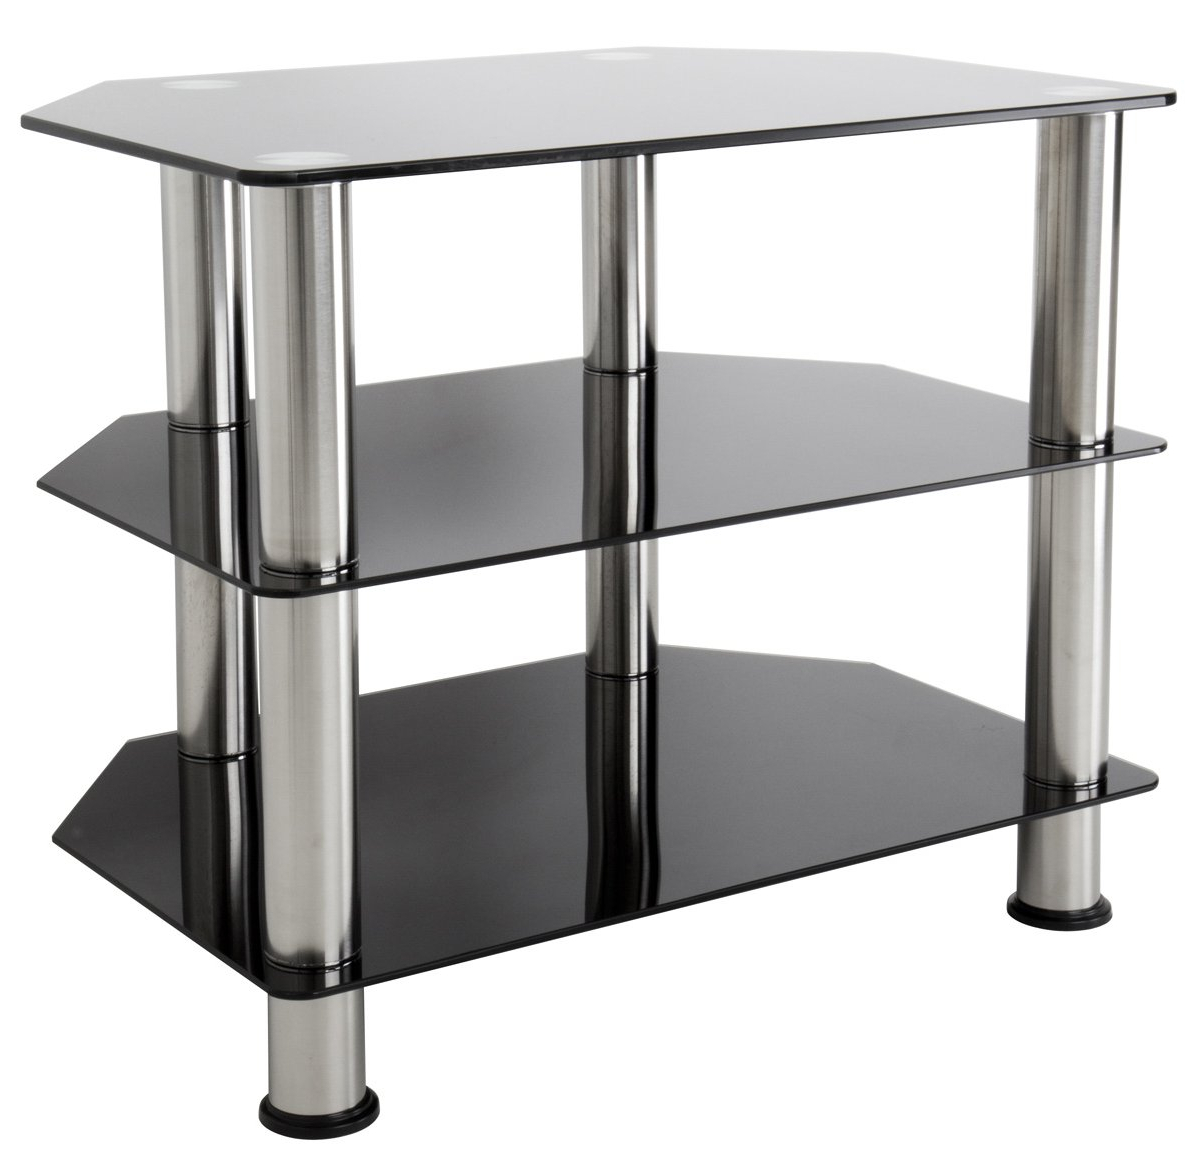 Avf Sdc600 Tv Stands Pertaining To Well Known 32 Inch Tv Stands (View 9 of 20)